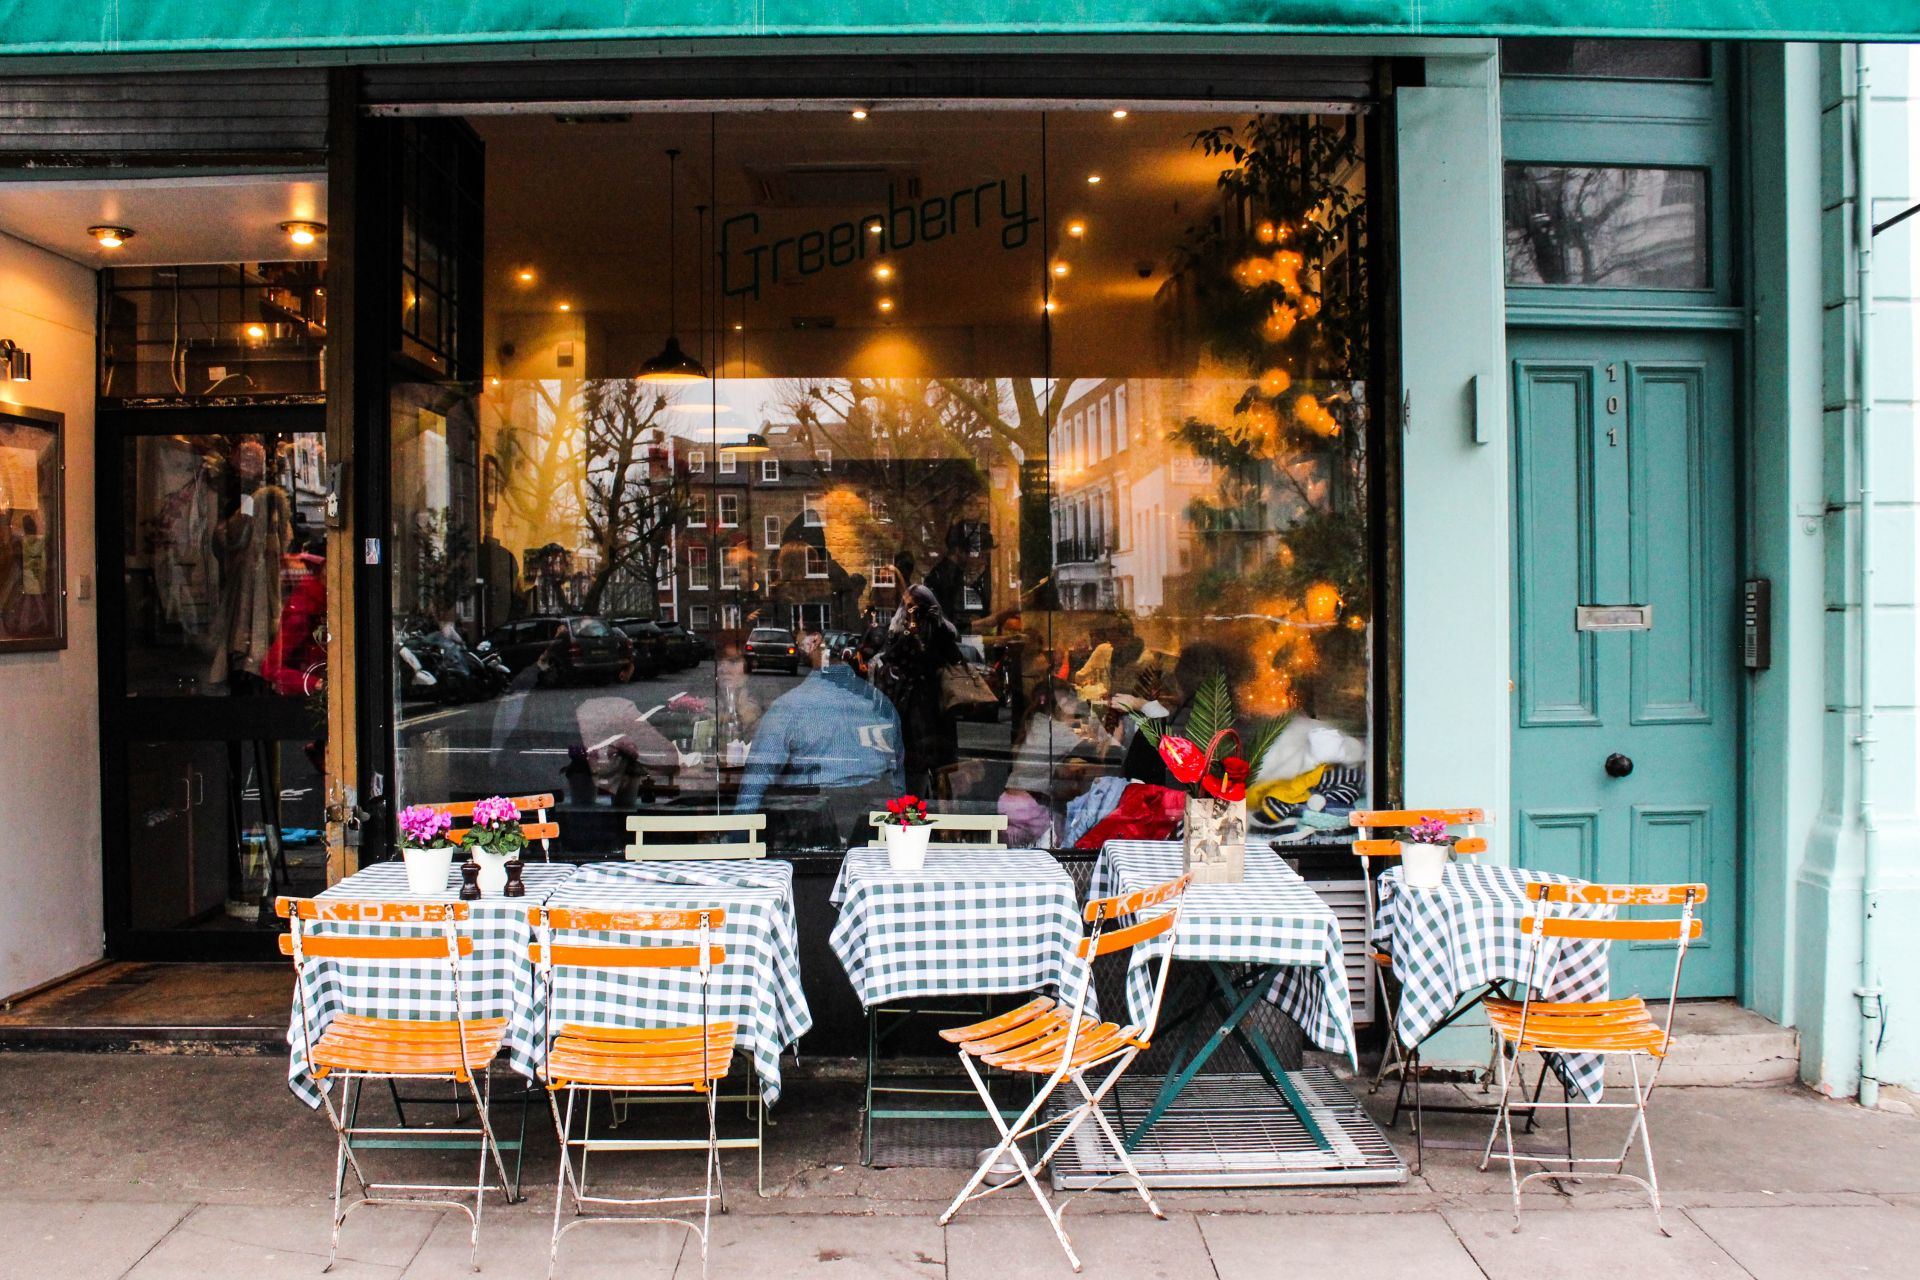 greenberry cafe review primrose hill london